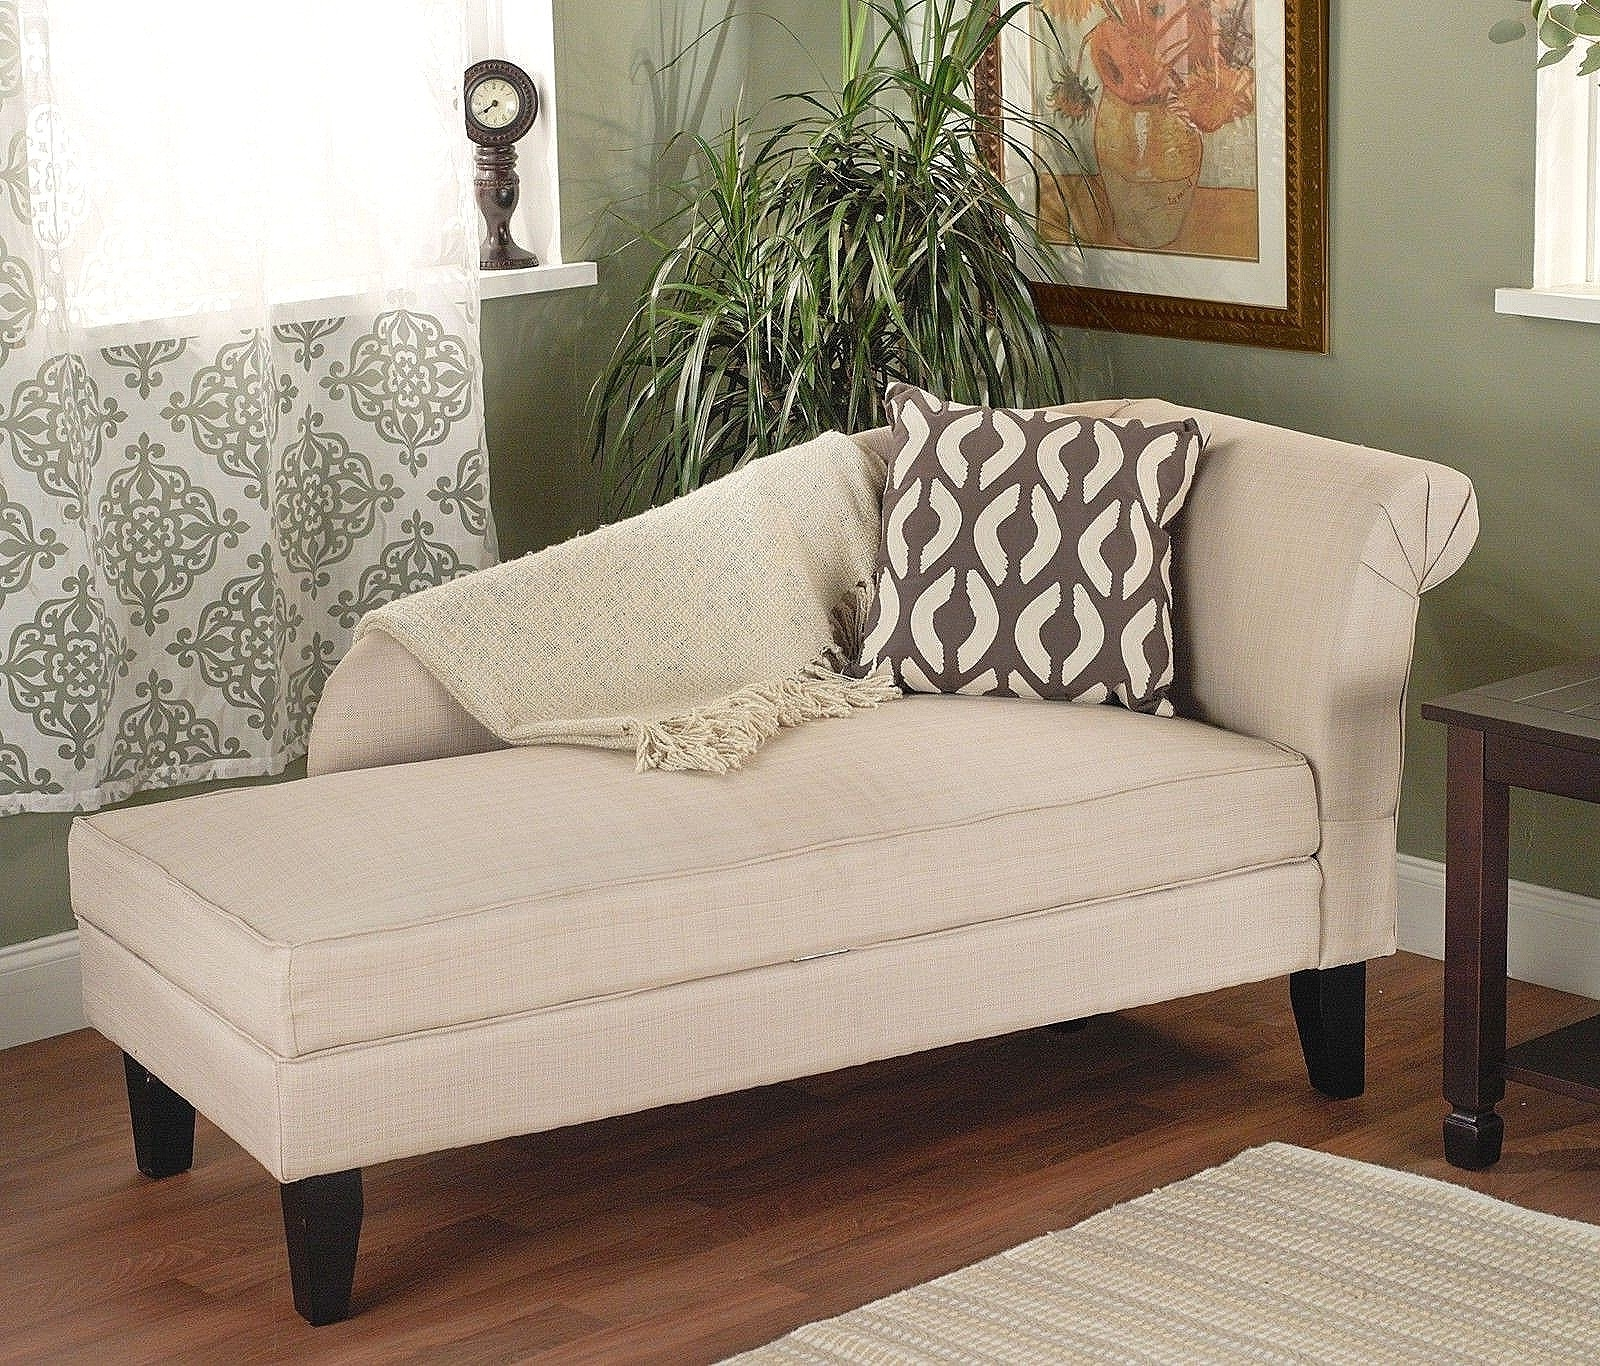 Overstock Chaise Lounges Throughout Most Up To Date Best Of Overstock Living Room Chairs (39 Photos (View 11 of 15)